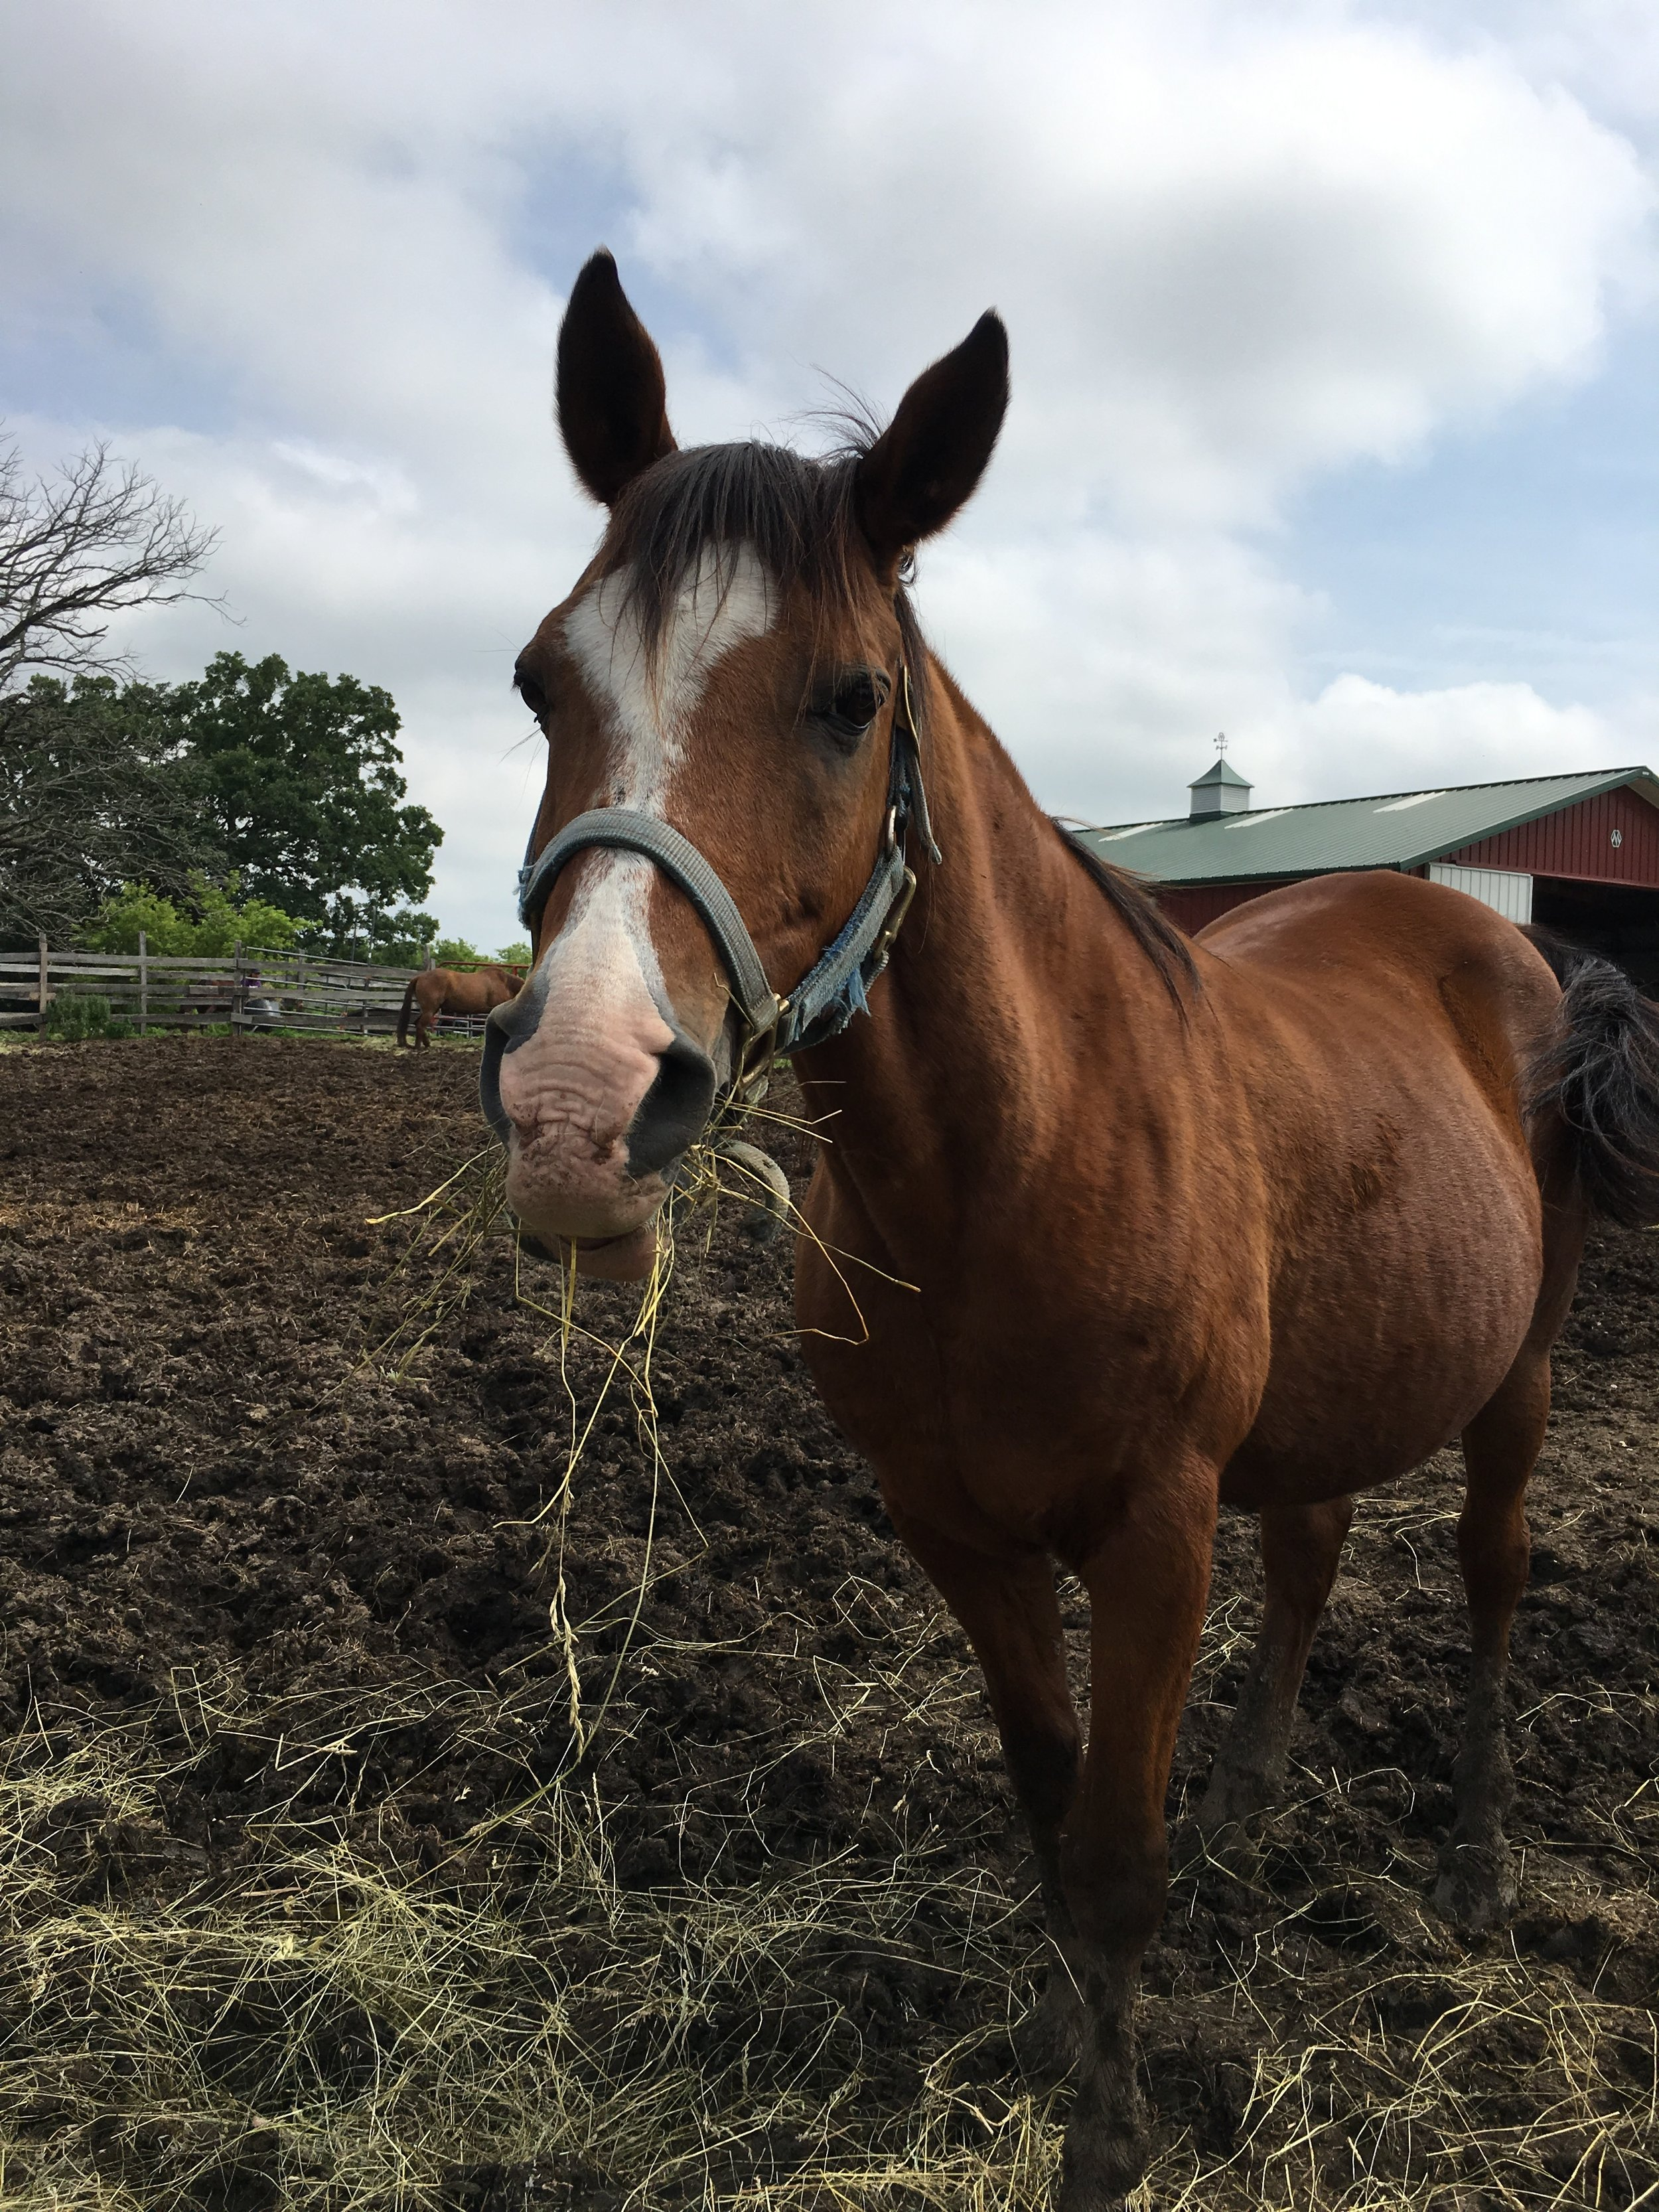 Reggie enjoys an afternoon snack while watching visitors at Stepping Stone Farms in Racine County.